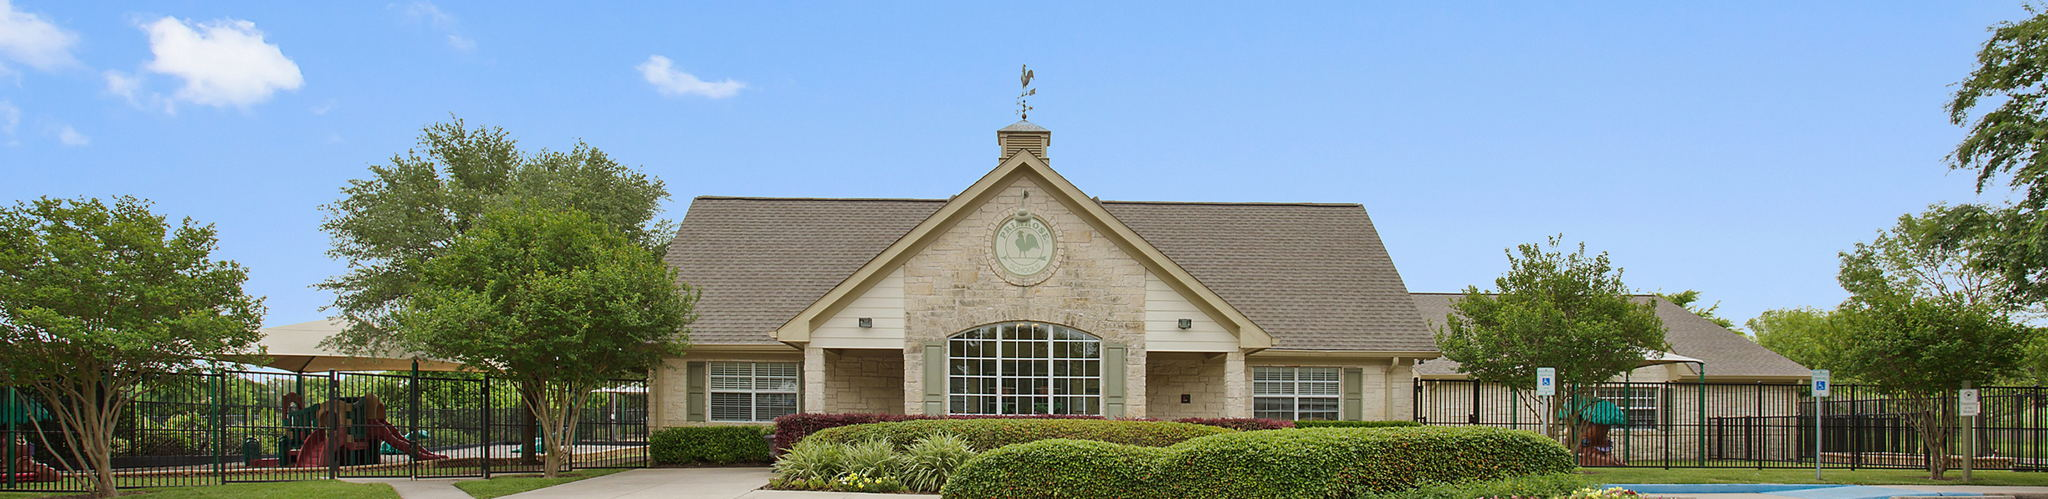 Exterior of a Primrose School of Round Rock at Forest Creek